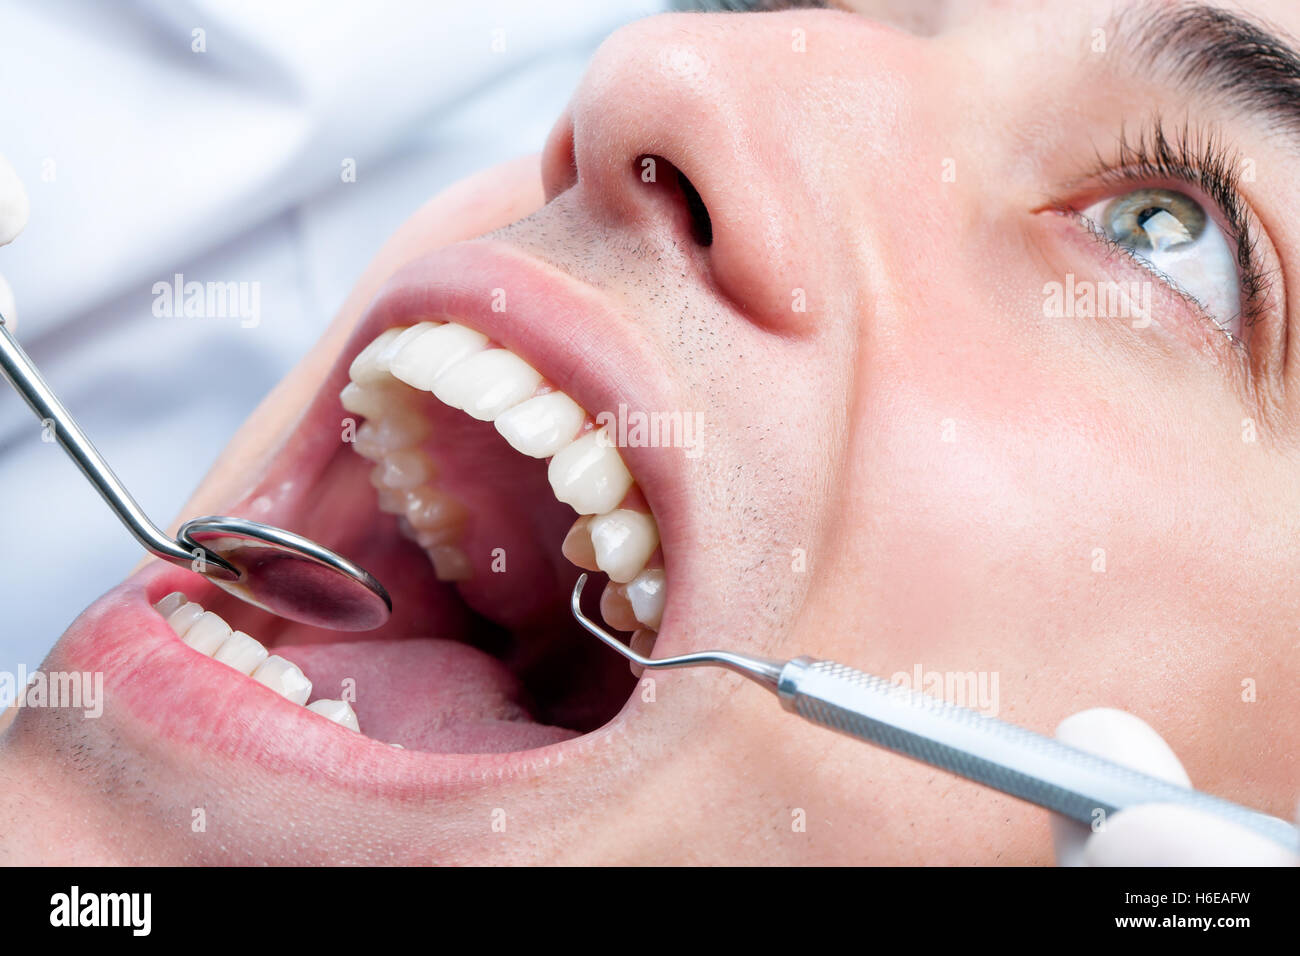 Extreme Close Up Of Young Man Whitening Teeth At Dentist Open Human